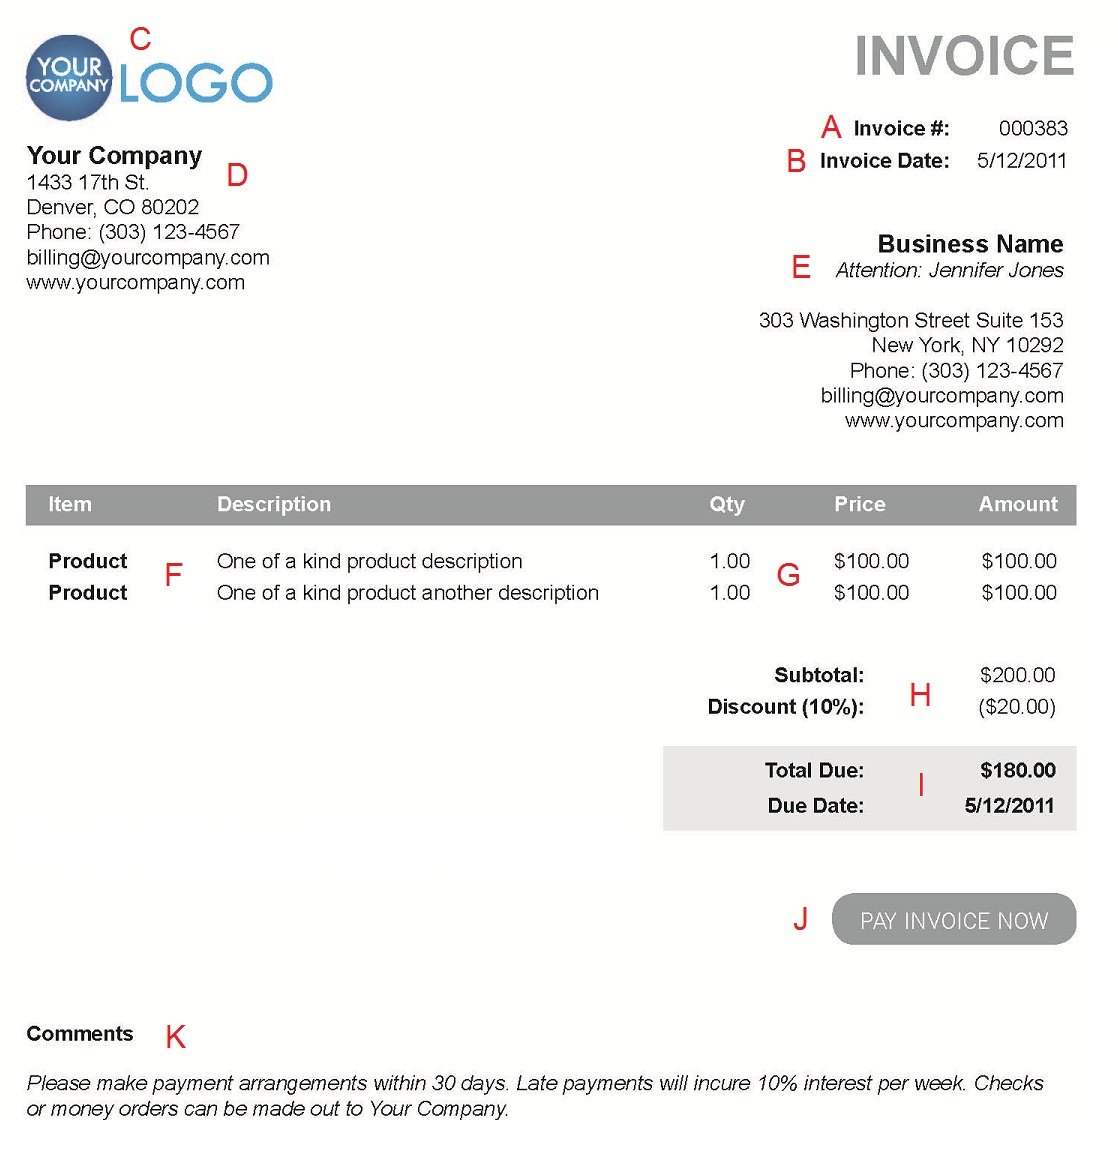 Opposenewapstandardsus  Winning The  Different Sections Of An Electronic Payment Invoice With Foxy A  With Endearing Microsoft Word Invoices Also Pro Invoice In Addition Best Online Invoicing Software And Fee Invoice As Well As Invoice Template Pdf Free Additionally Word  Invoice Template From Paysimplecom With Opposenewapstandardsus  Foxy The  Different Sections Of An Electronic Payment Invoice With Endearing A  And Winning Microsoft Word Invoices Also Pro Invoice In Addition Best Online Invoicing Software From Paysimplecom